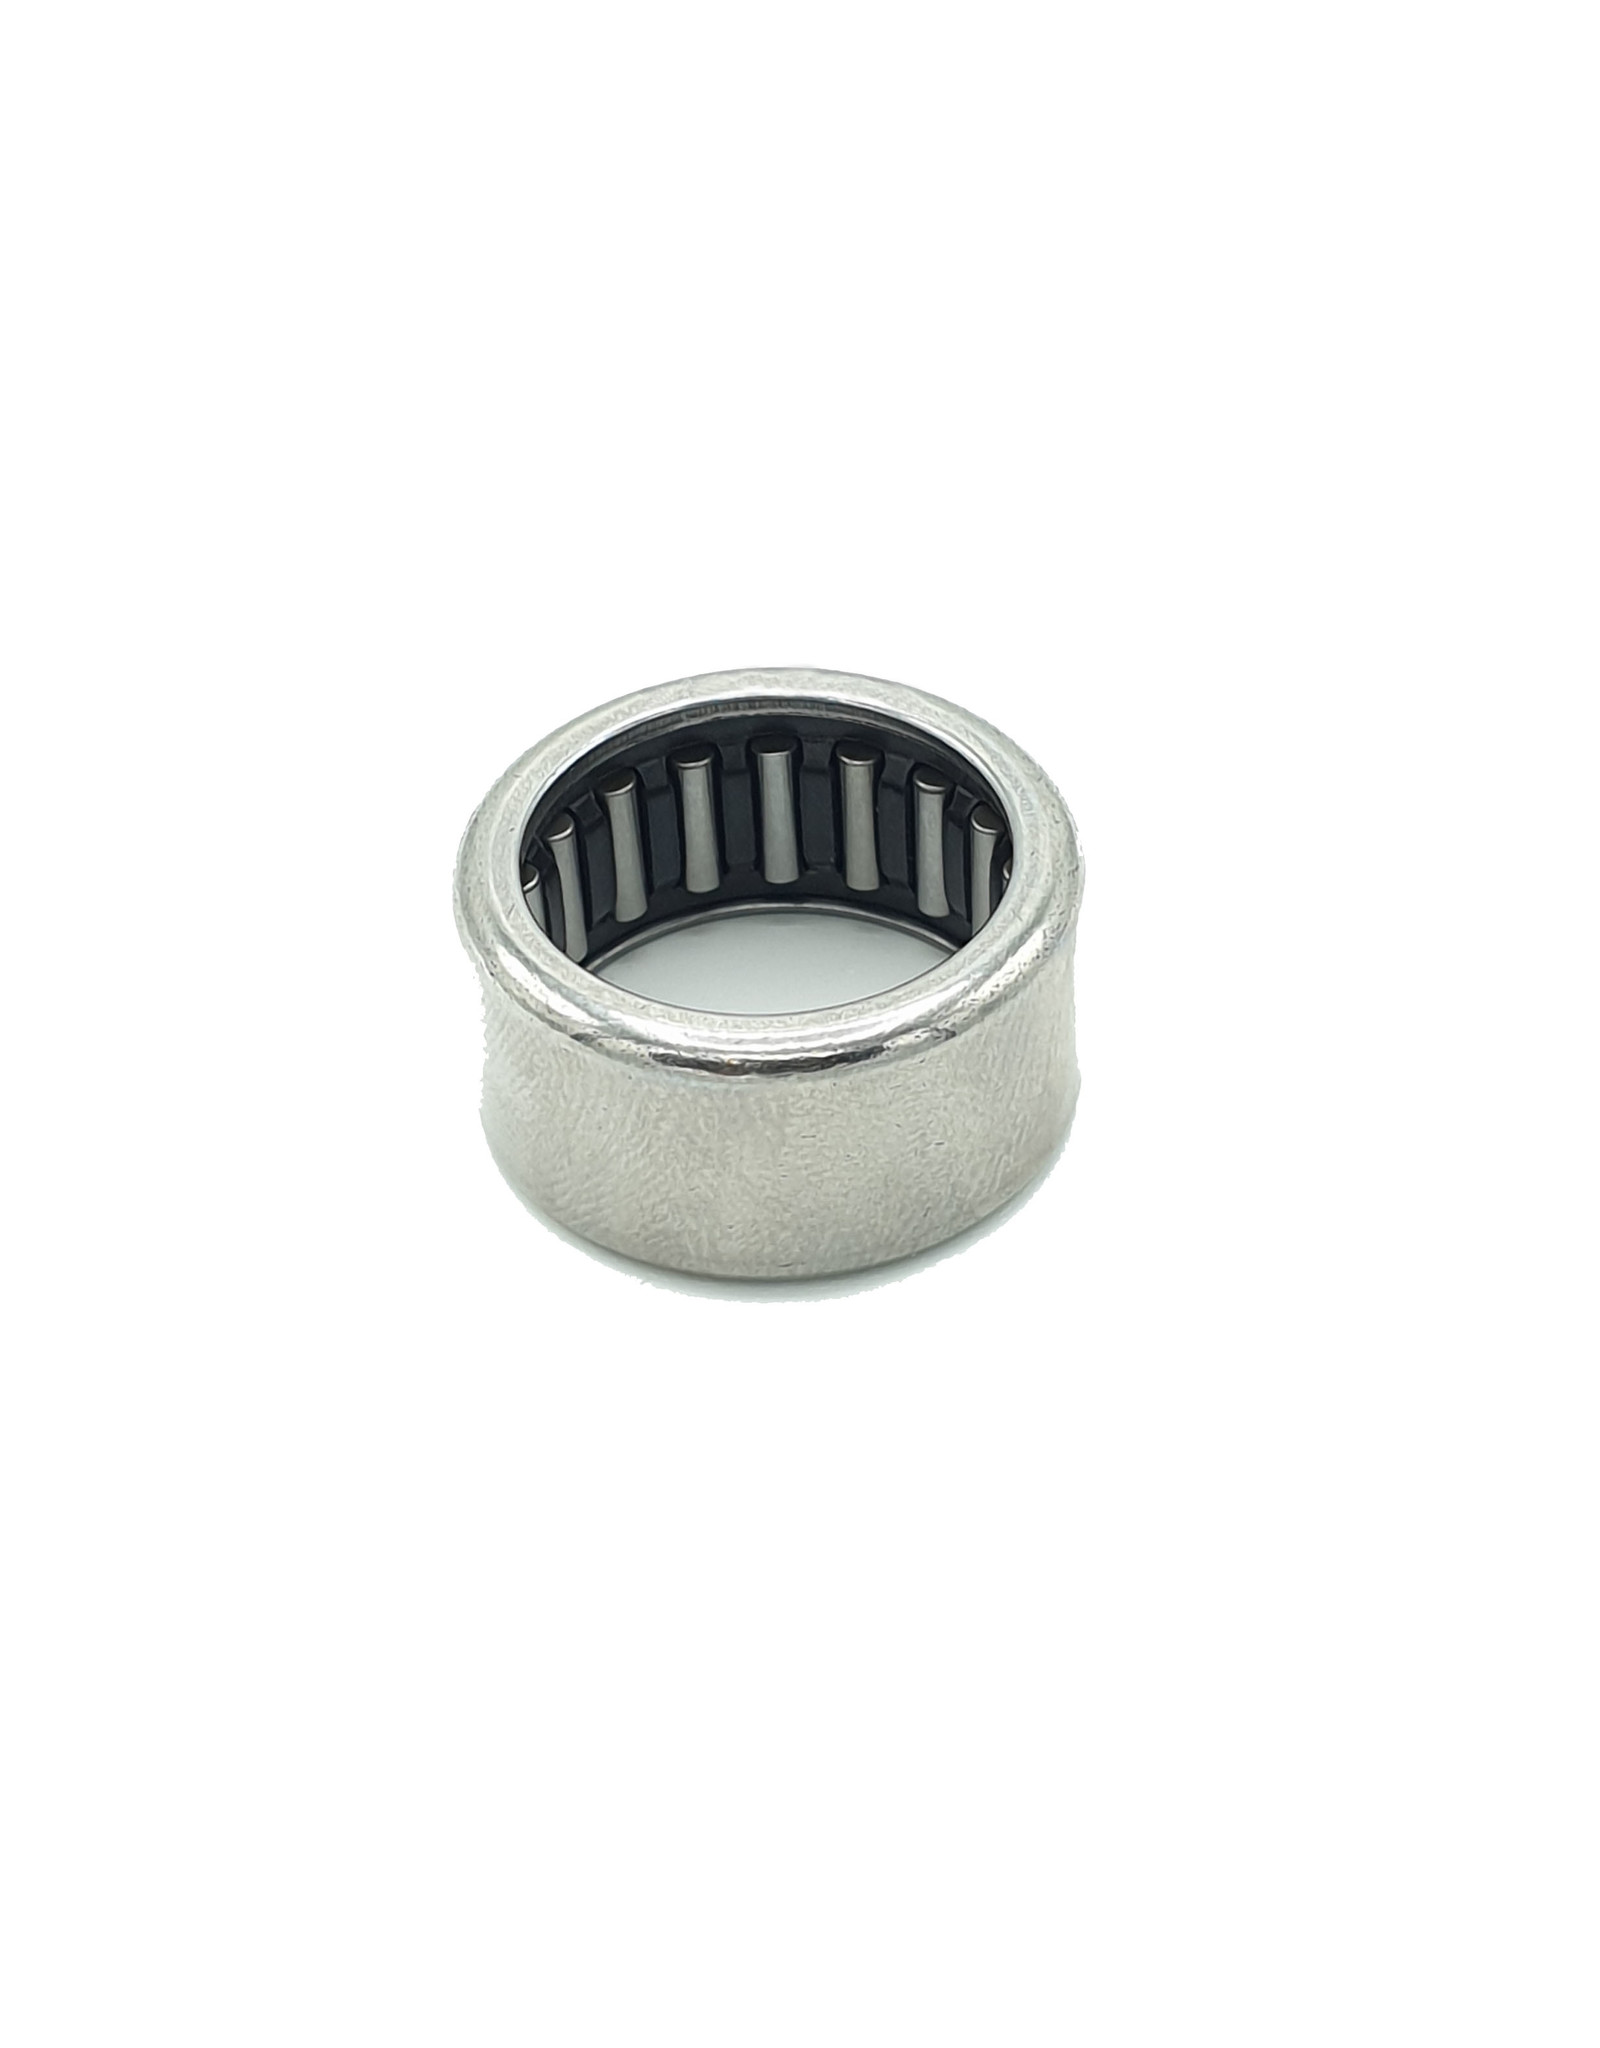 Suspension Bearing (uprated)